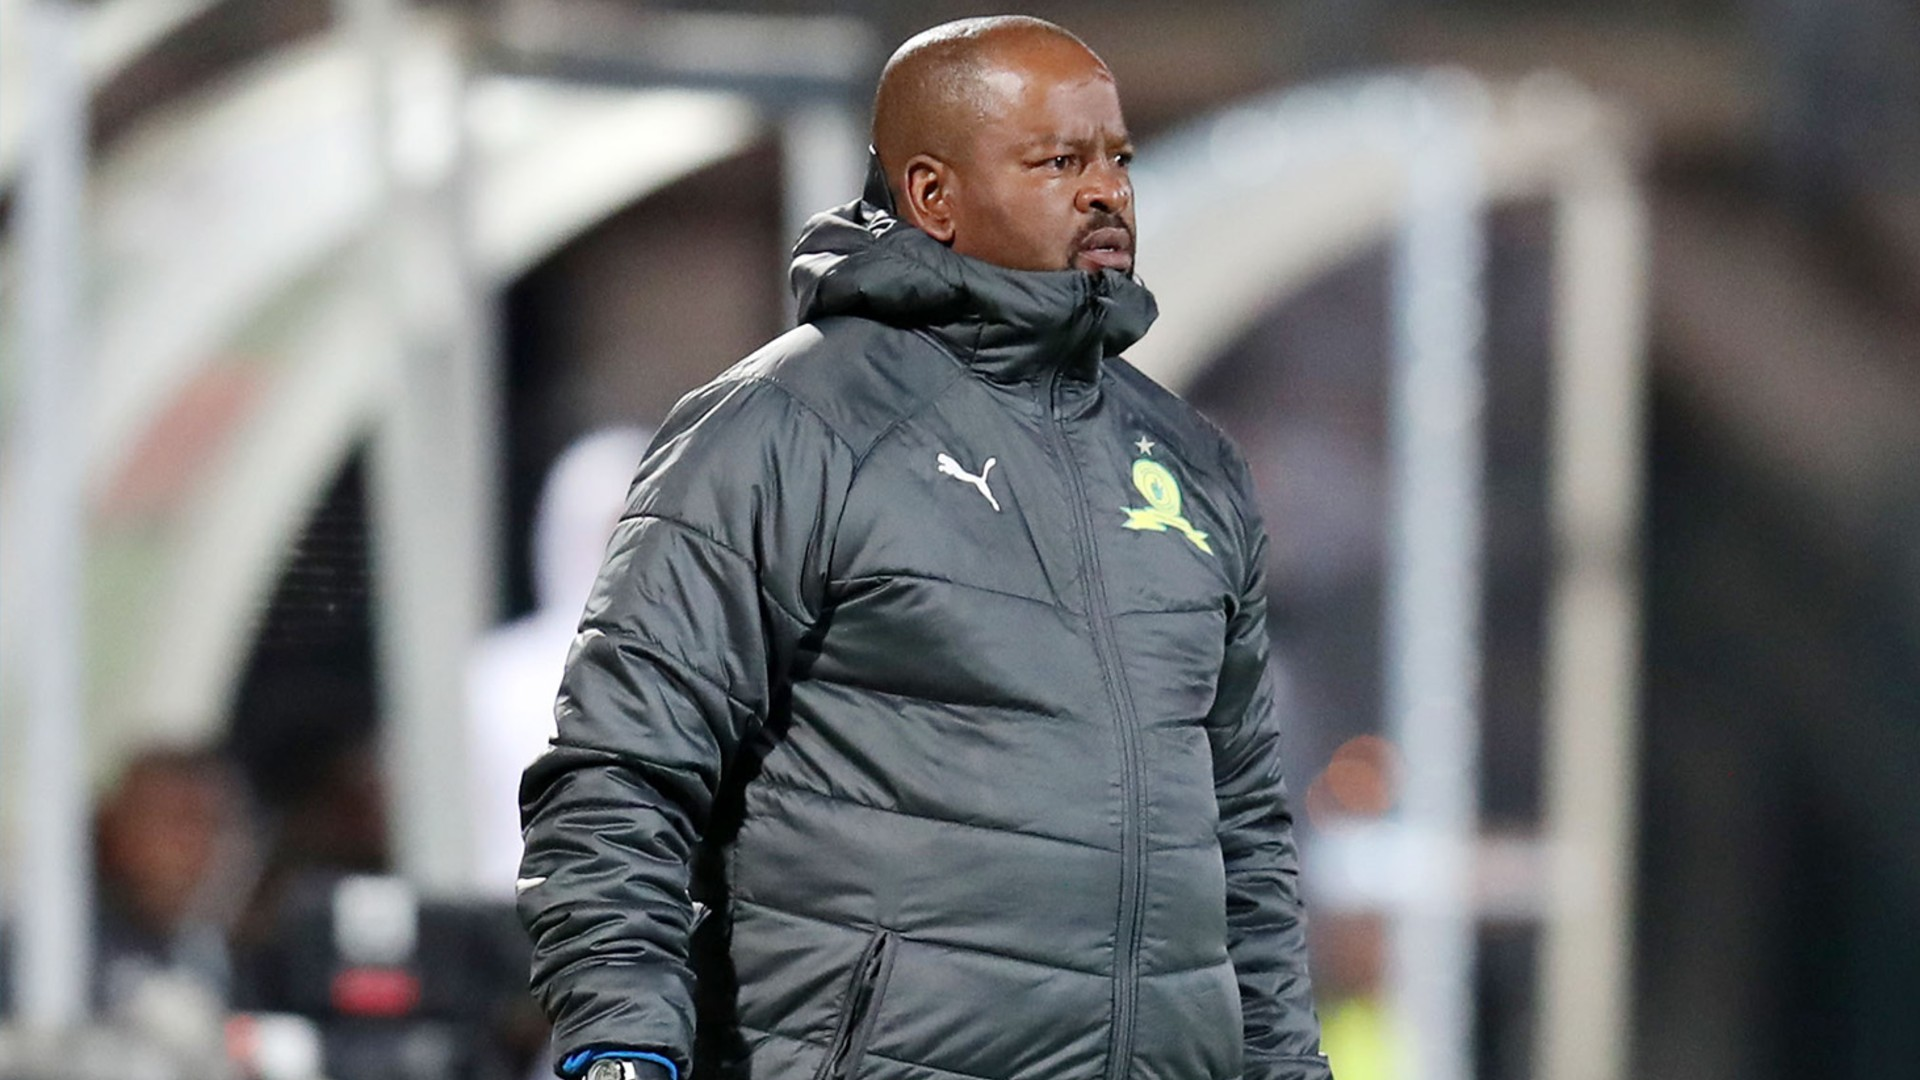 Kaizer Chiefs striker Nurkovic will forever be late in the box - Mngqithi